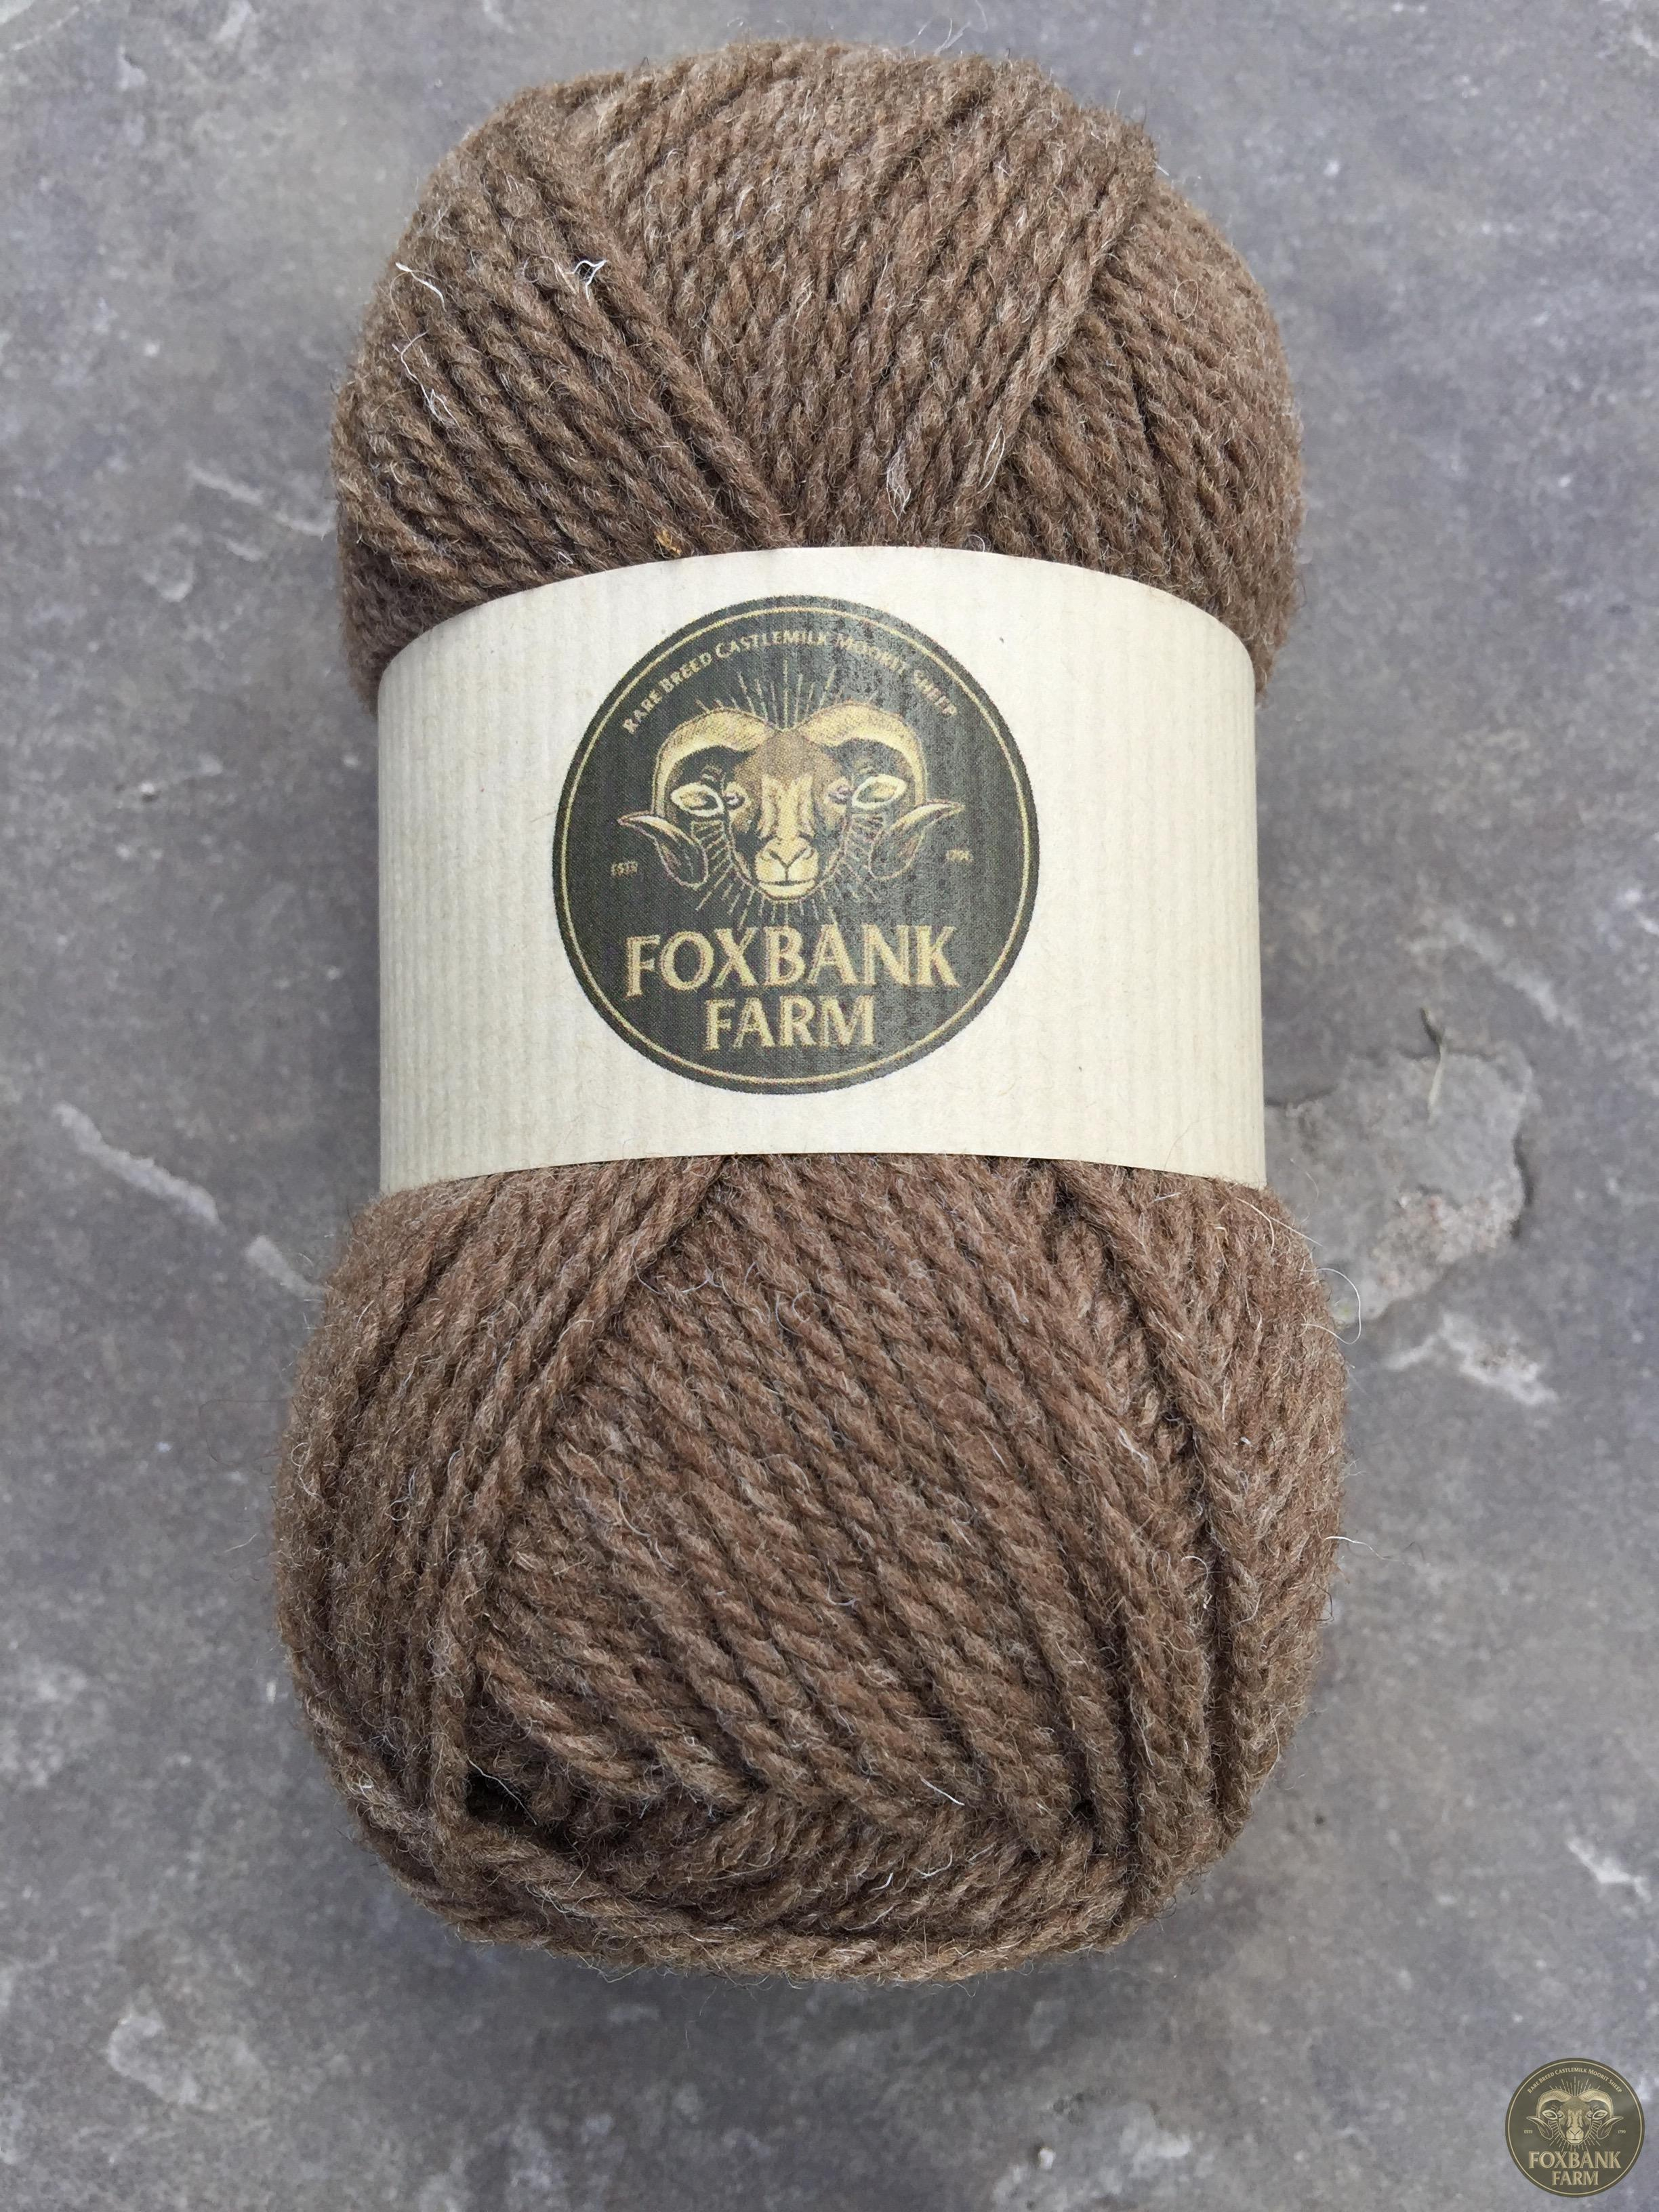 Castlemilk Moorit Woolen Spun Wool. Natural Colour.